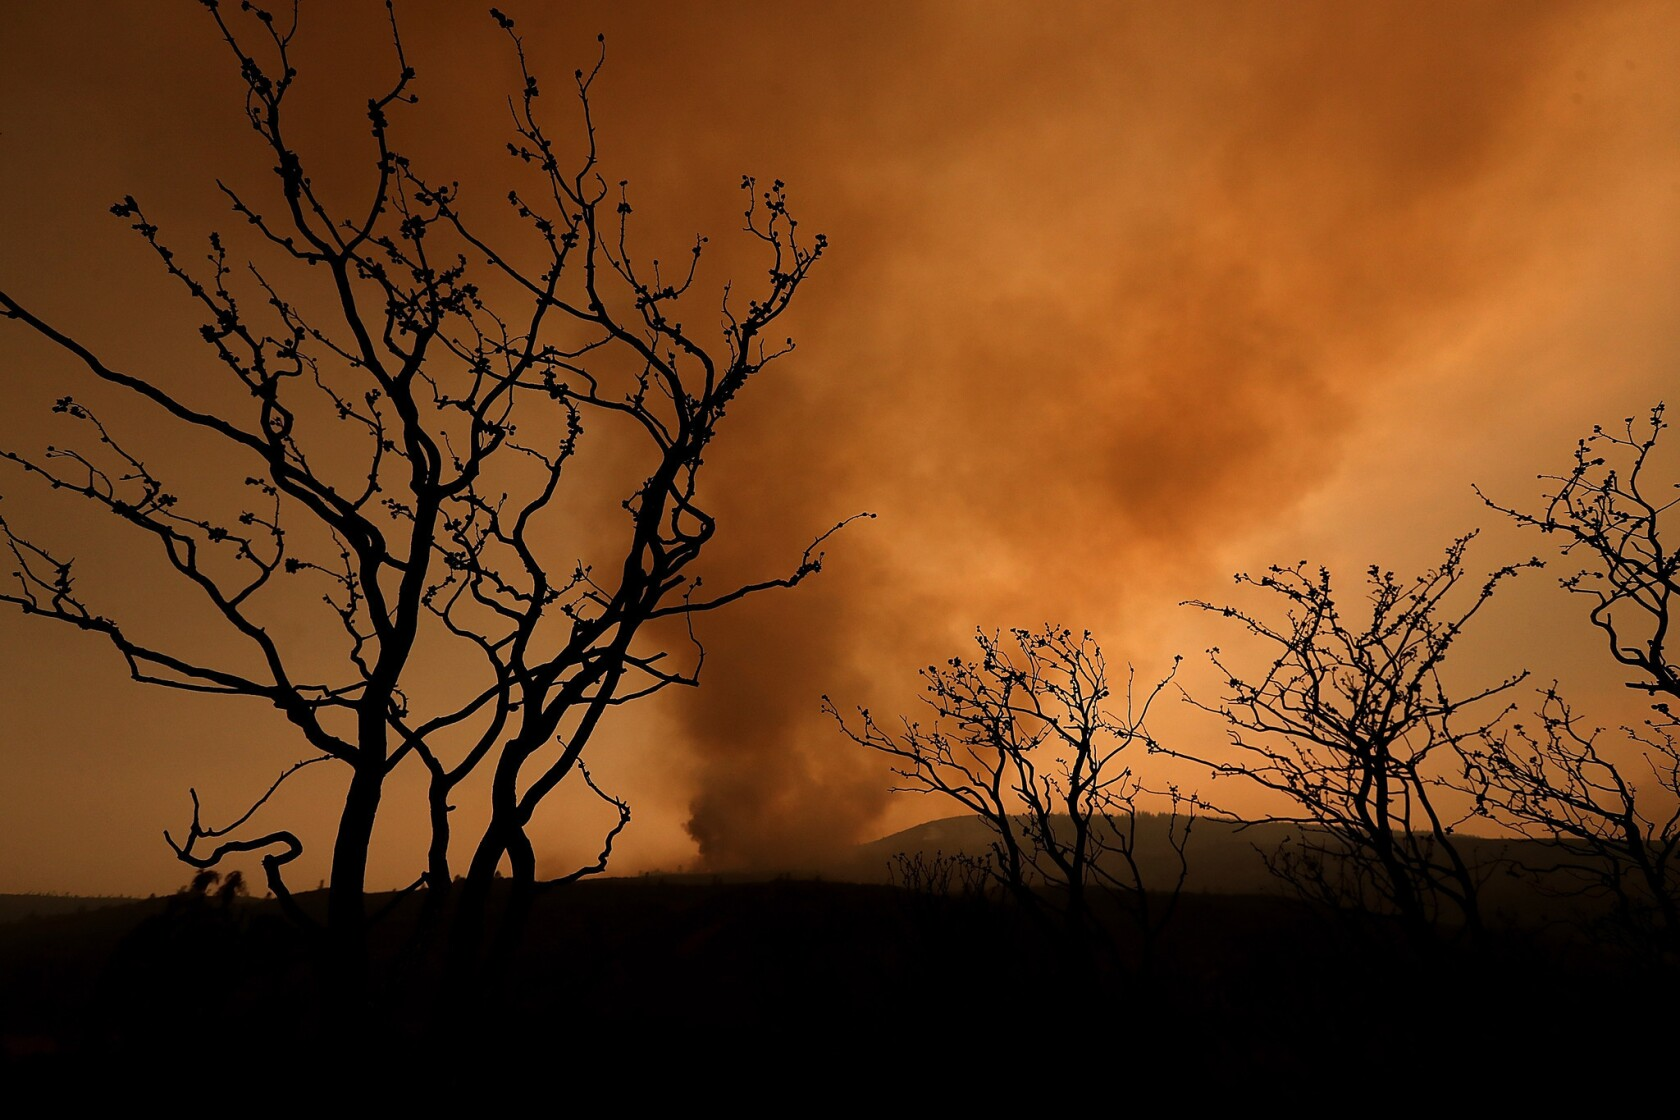 California fires rage and Gov Jerry Brown offers grim view